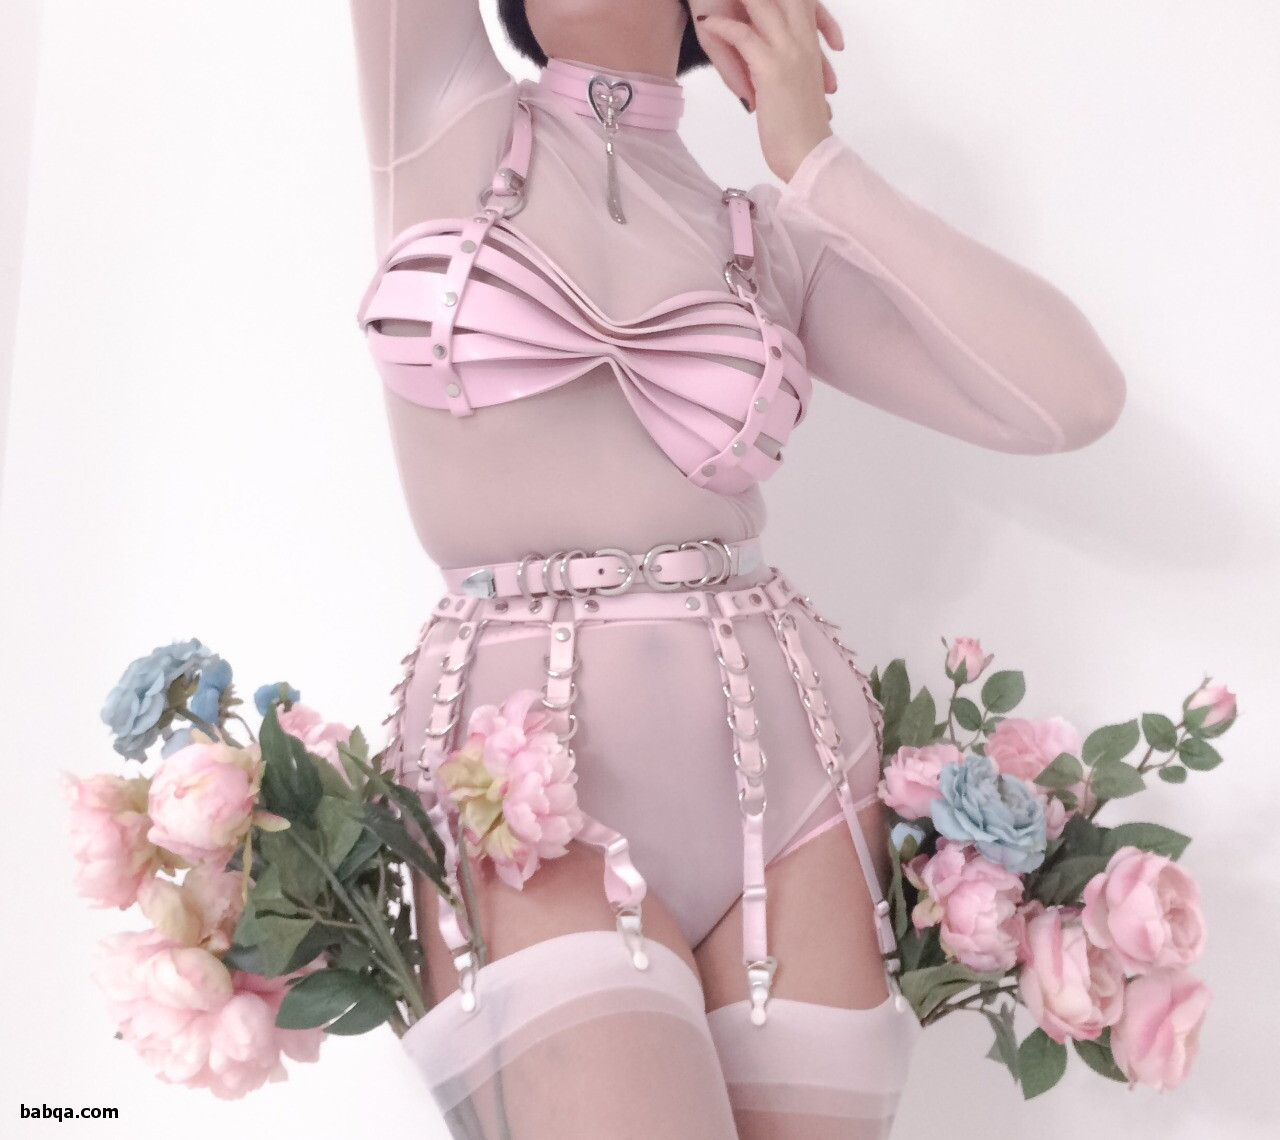 white stockings tease and pink baby doll lingerie